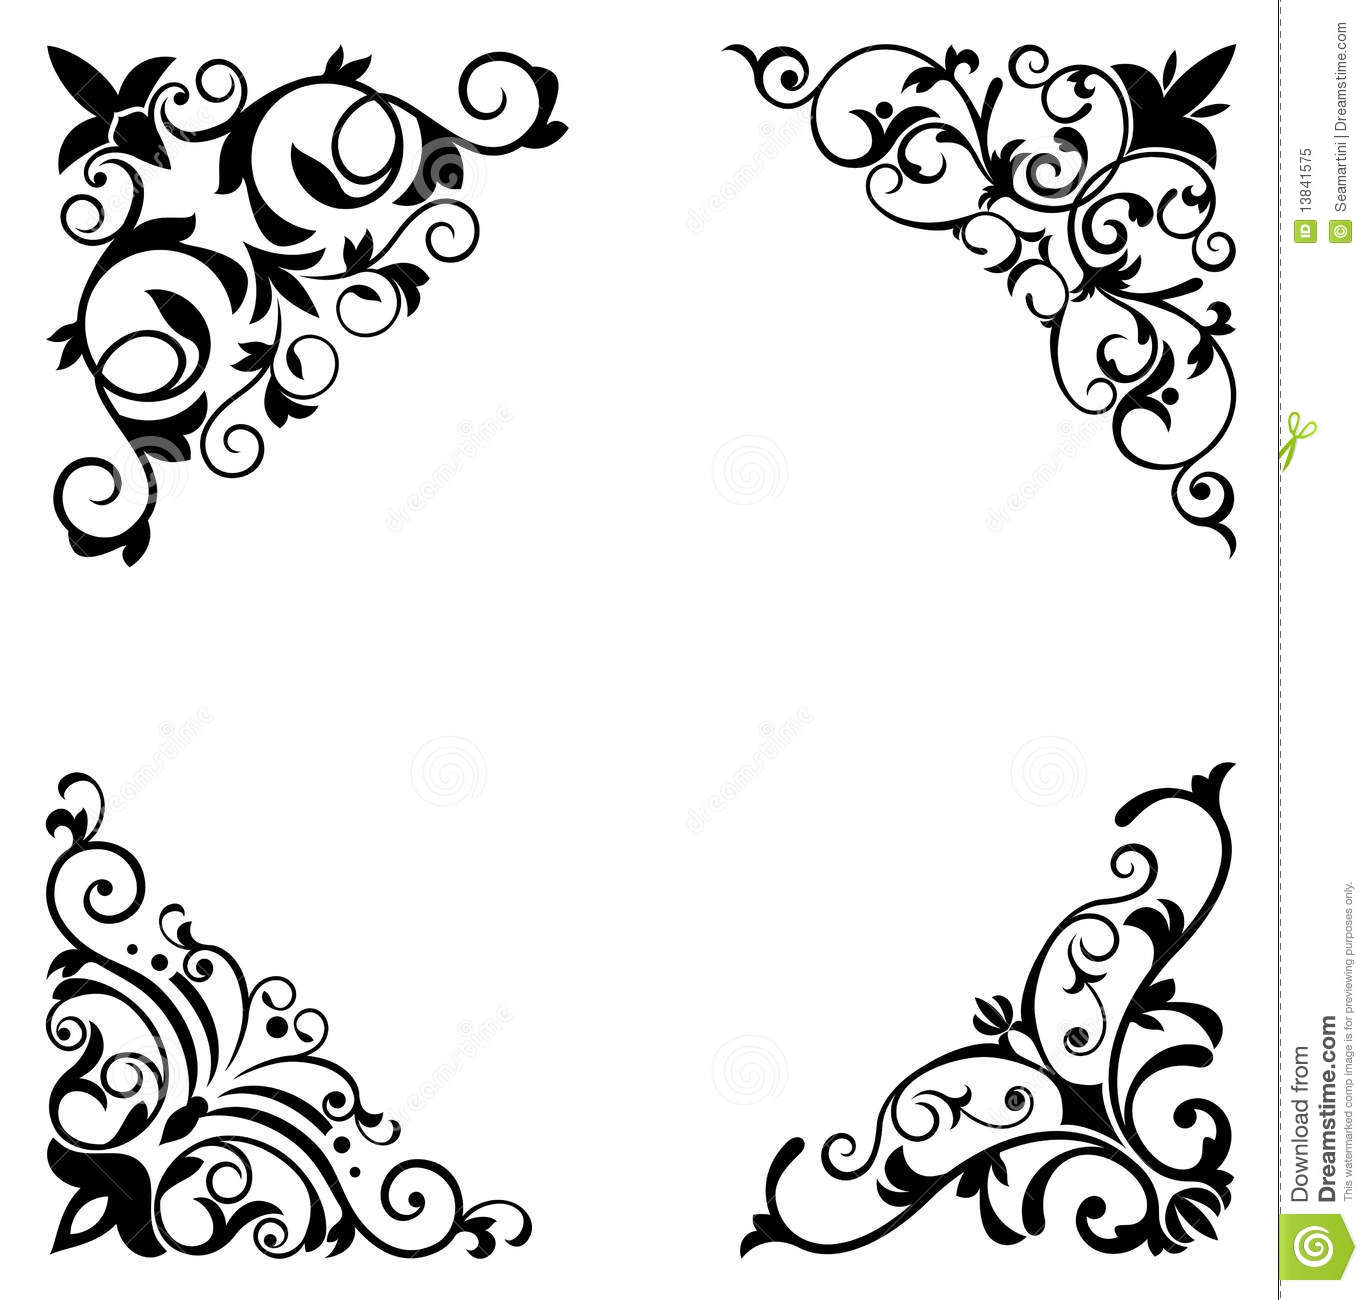 Art Deco Pattern Wallpaper 03 Mysterious 603775850 also Stock Photography Totem Turtle Image18205382 likewise Peacock Feathers together with Royalty Free Stock Photo Flower Patterns Borders Image13841575 together with Japanese wave dot. on art deco patterns